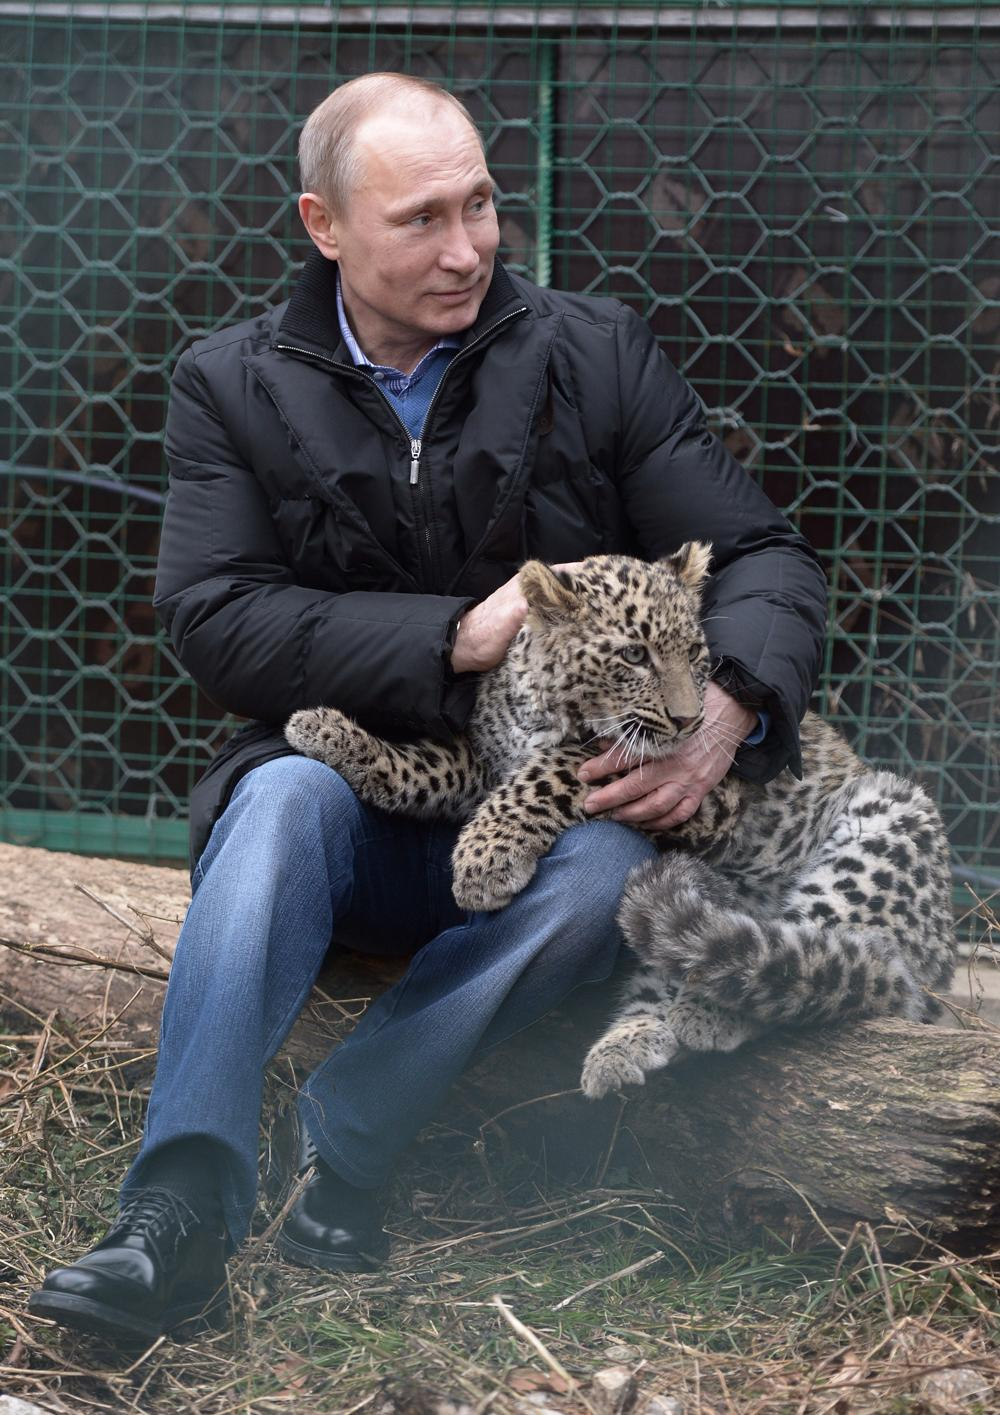 Here Is An Unsettling Image Of Vladimir Putin Cuddling A Koala Indy100